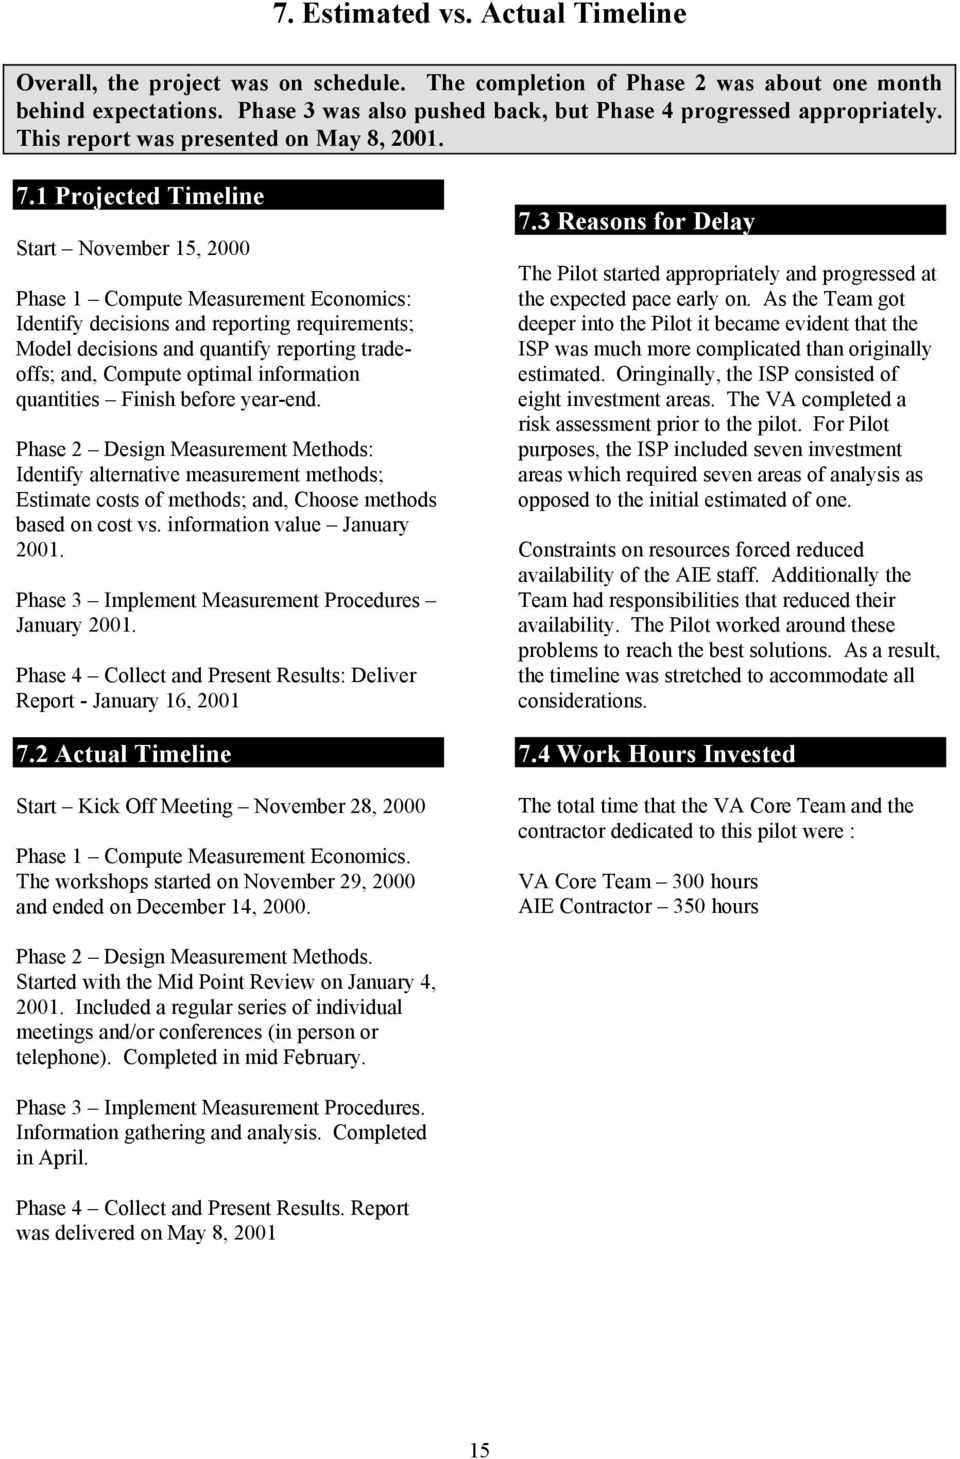 1 Projected Timeline Start November 15, 2000 Phase 1 Compute Measurement Economics: Identify decisions and reporting requirements; Model decisions and quantify reporting tradeoffs; and, Compute